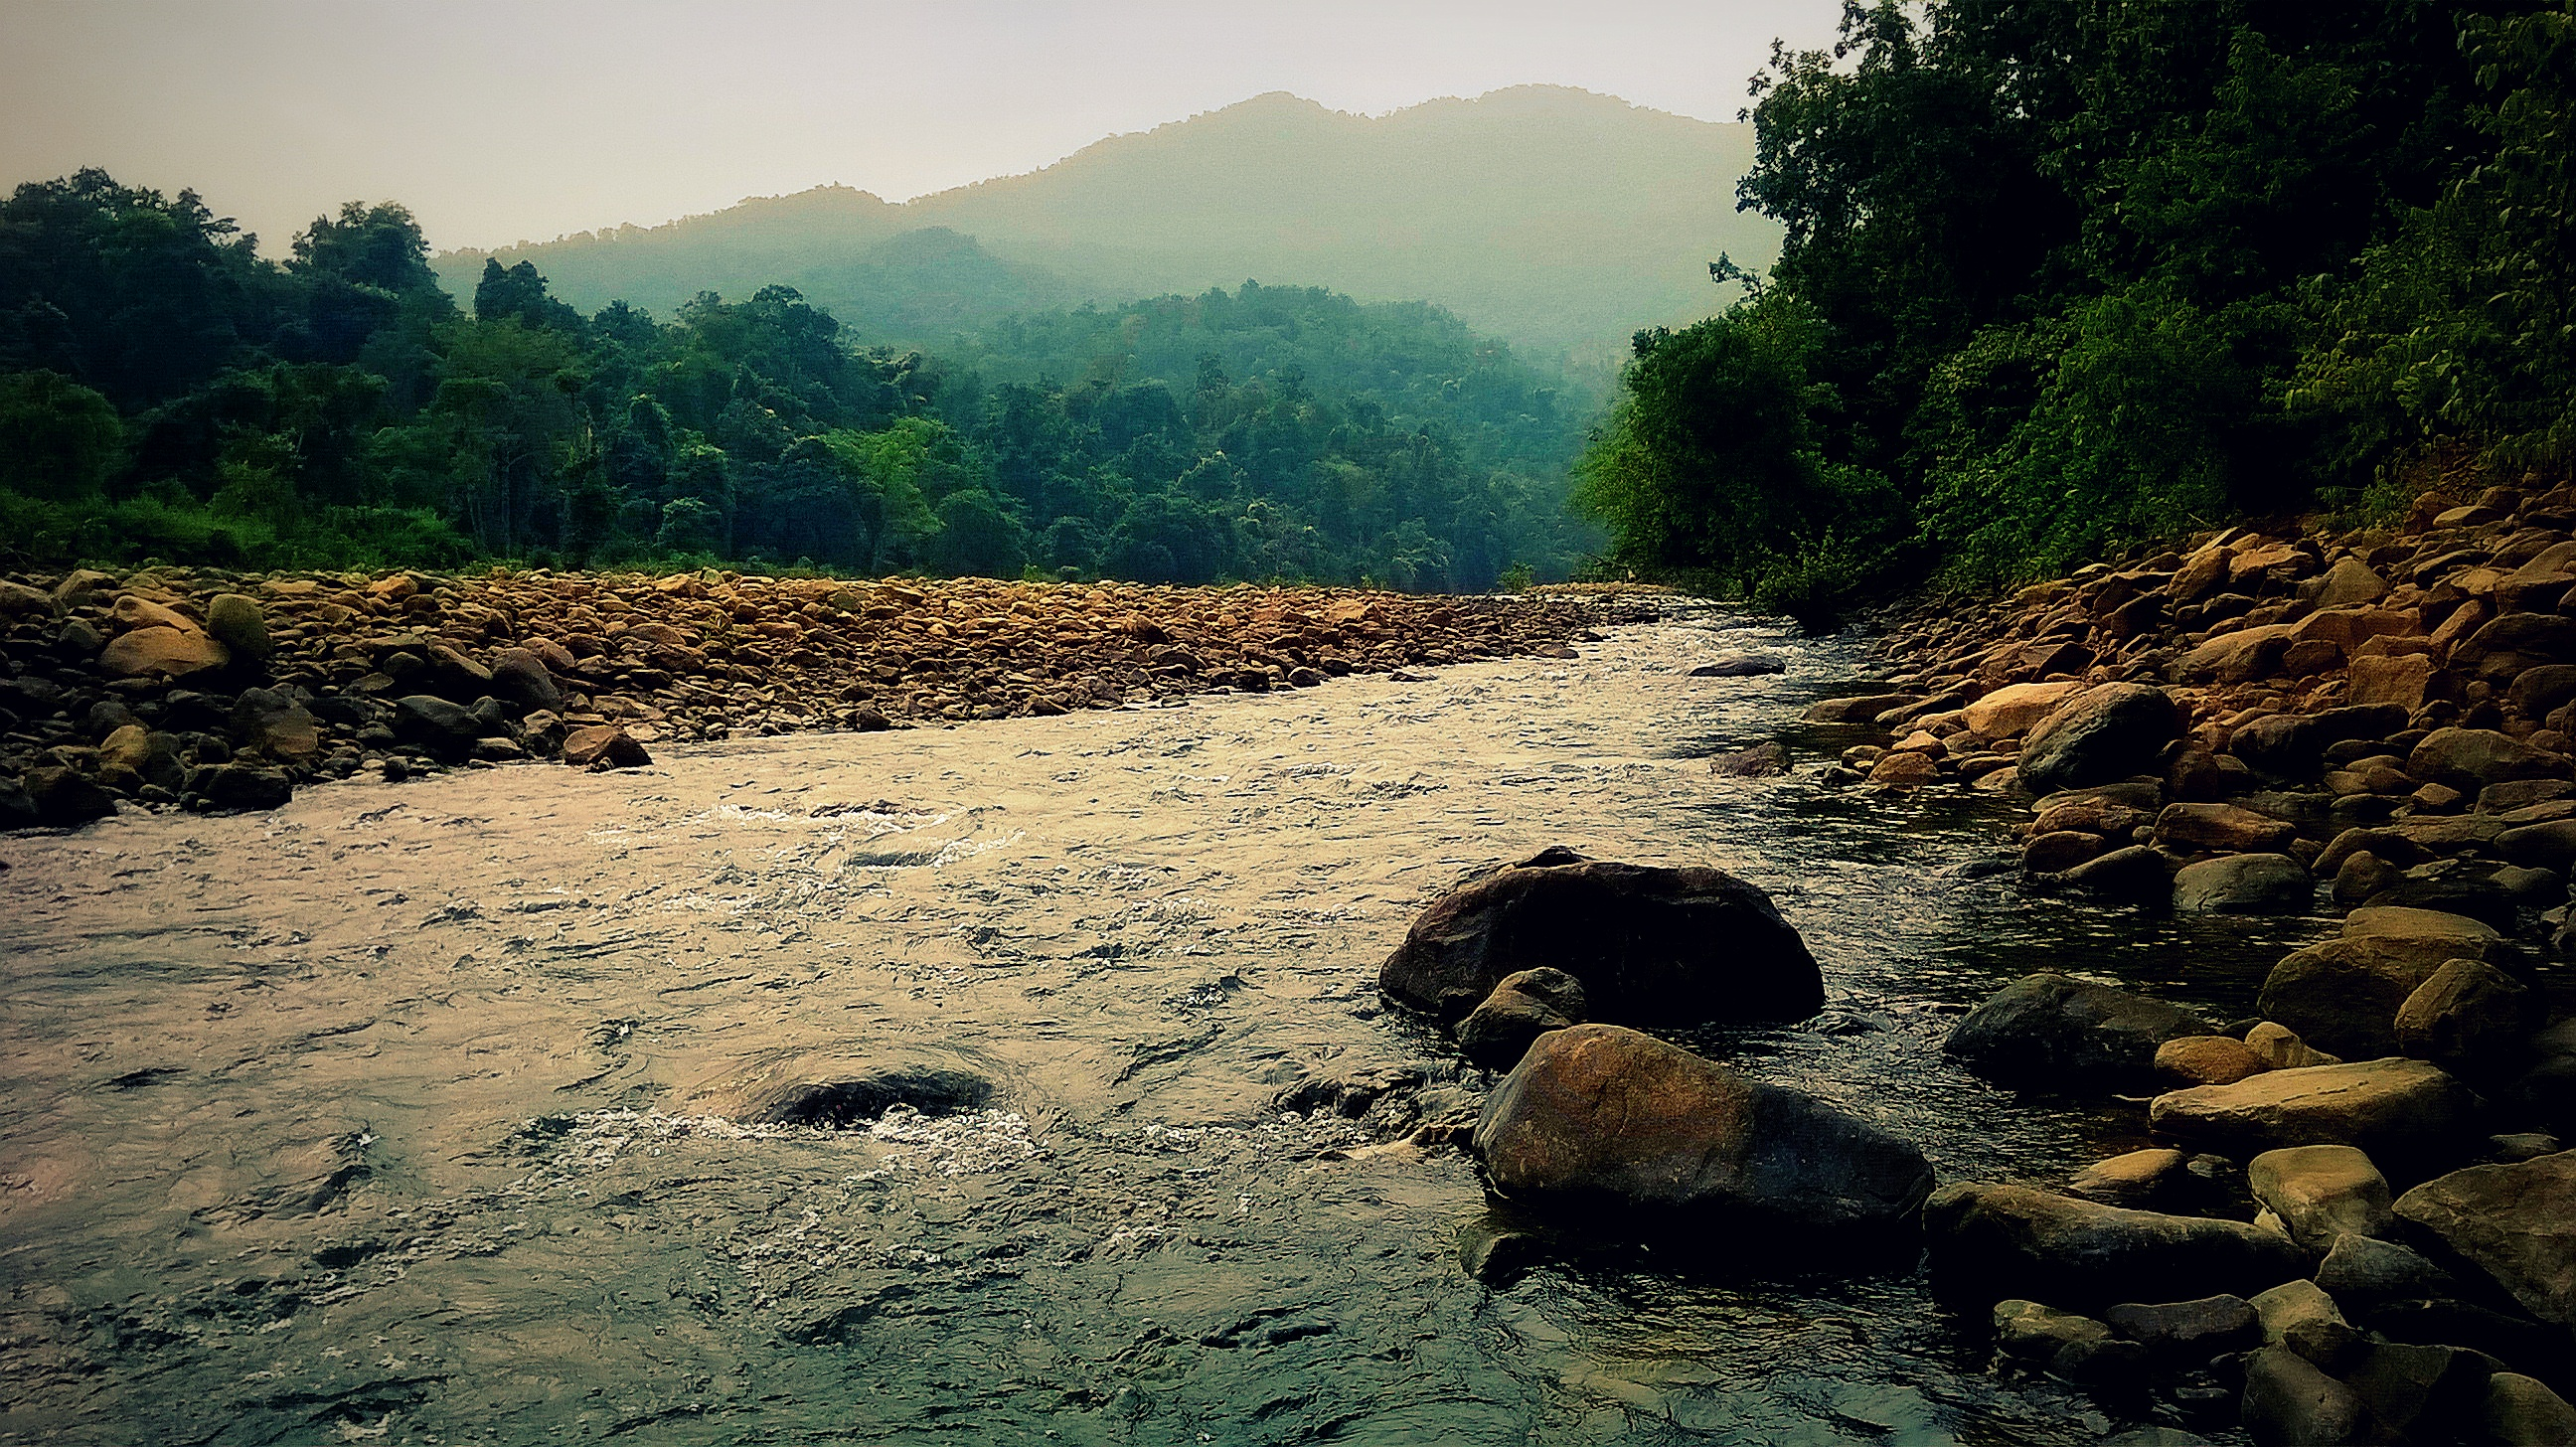 Palpala River near lulung in Simlipal National Park